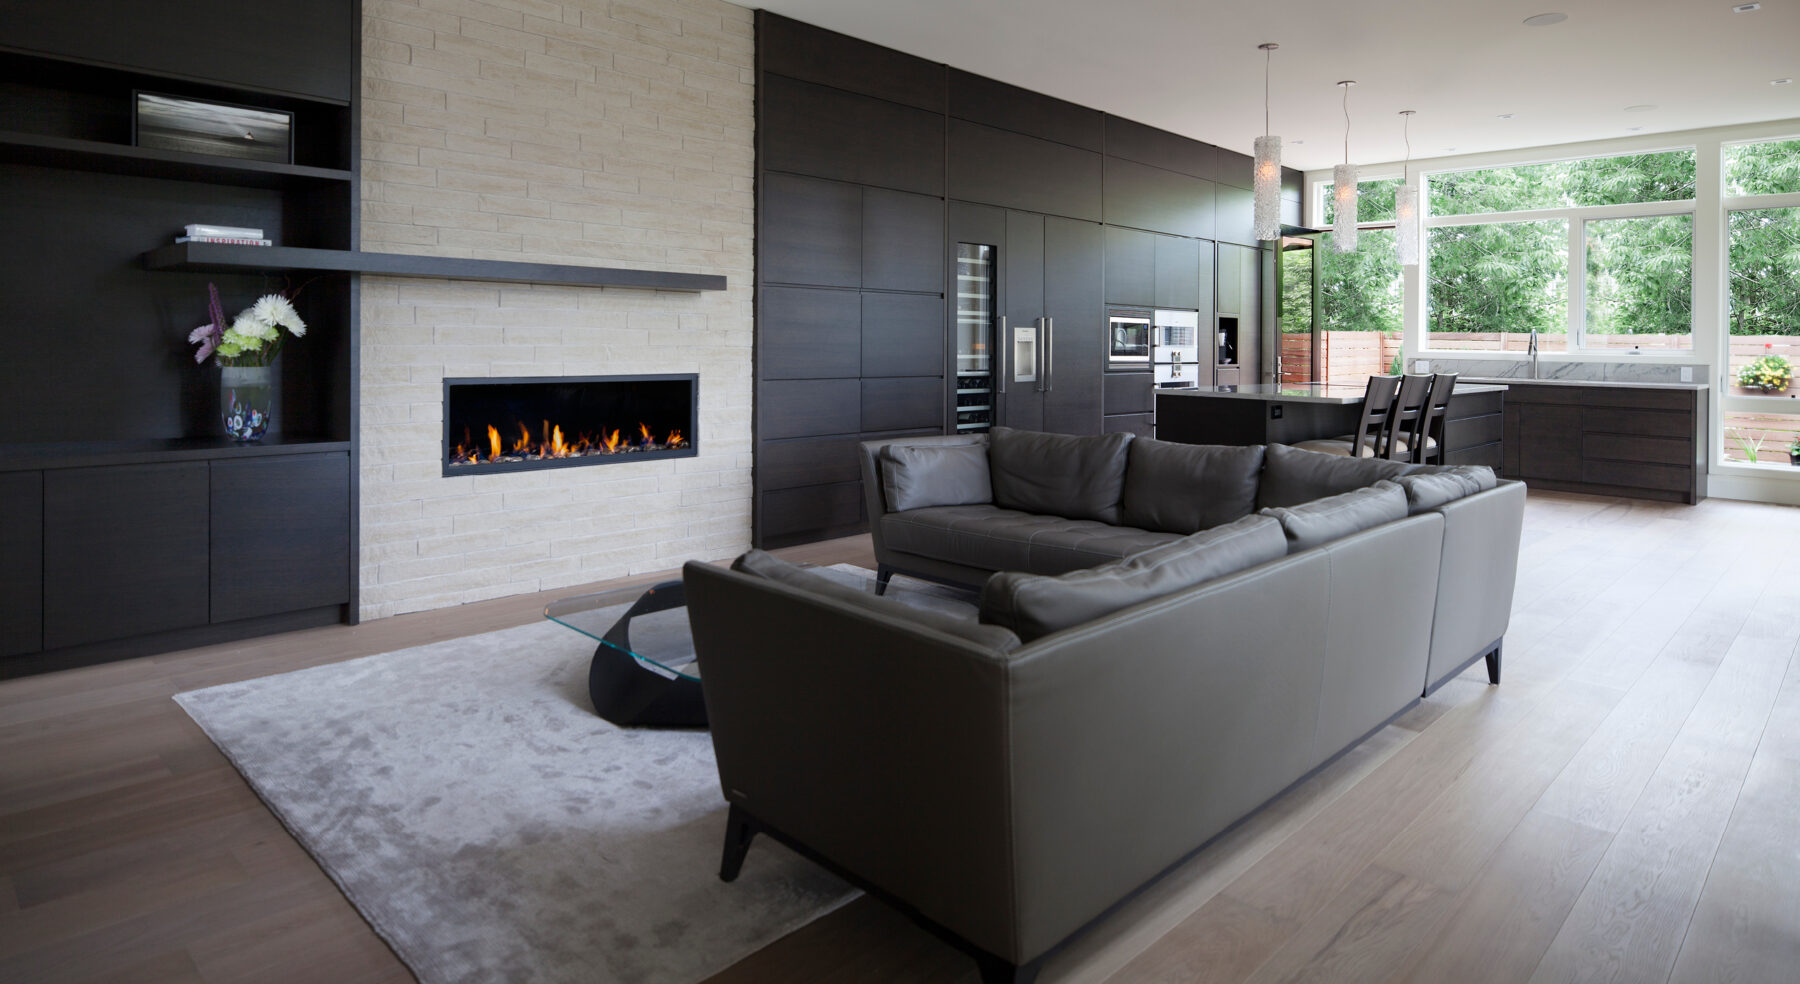 View of Westboro Home living area fire place and kitchen